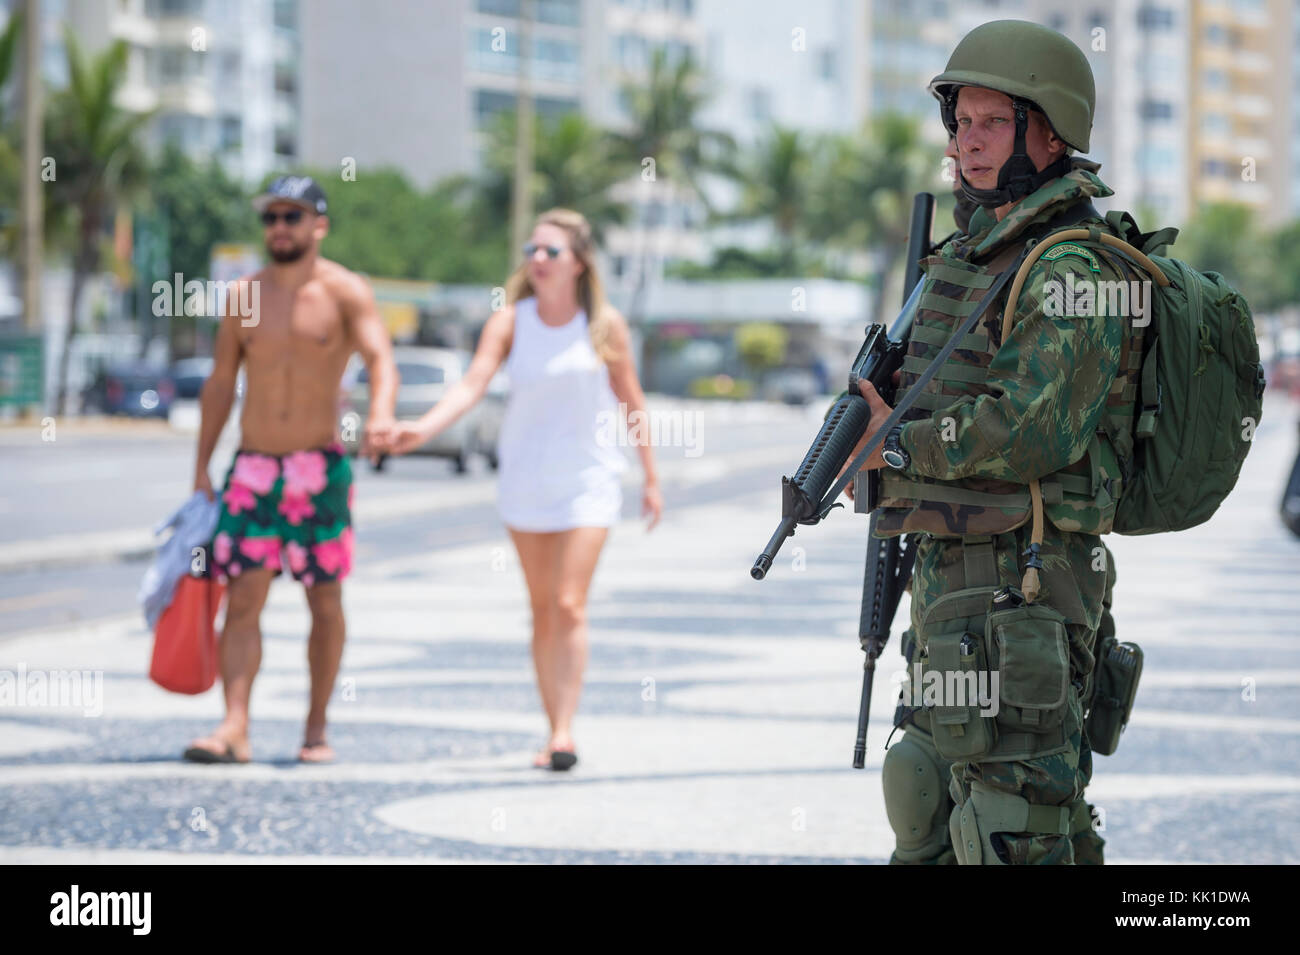 RIO DE JANEIRO - FEBRUARY 10, 2017: Tourists pass Brazilian Army soldiers standing in full camouflage uniform on - Stock Image